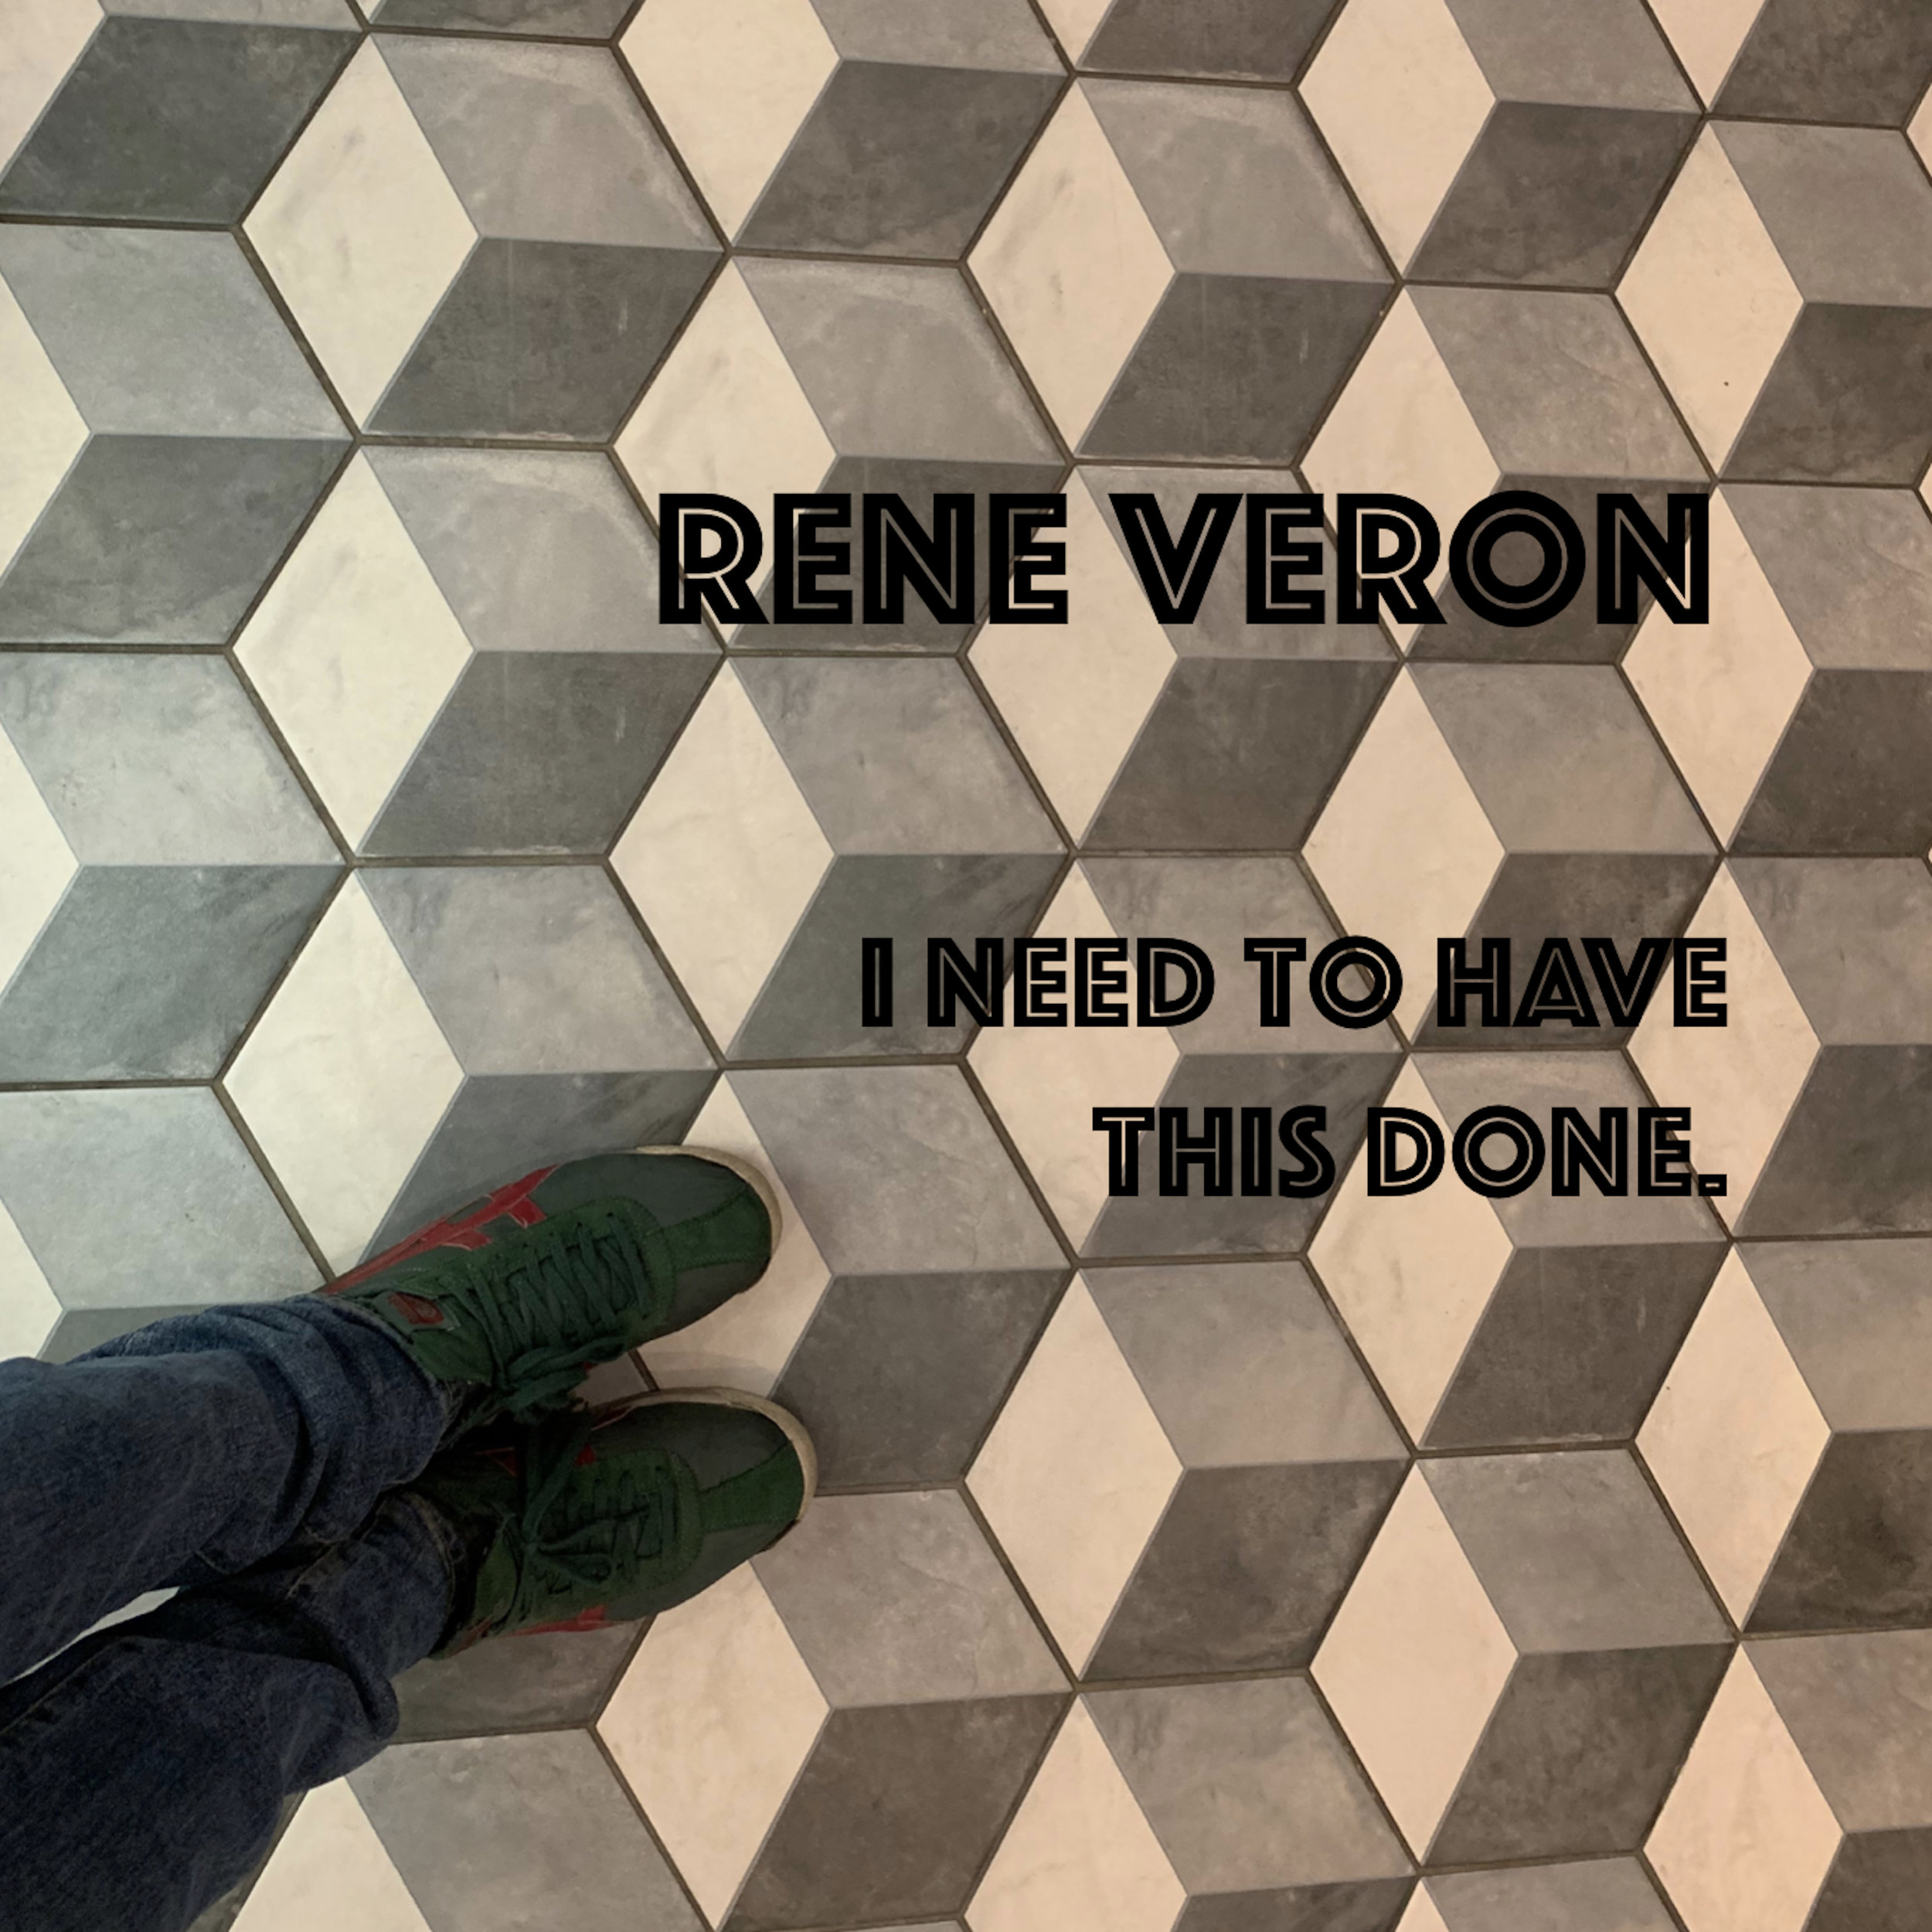 """I need to have this done"" by Rene Veron"